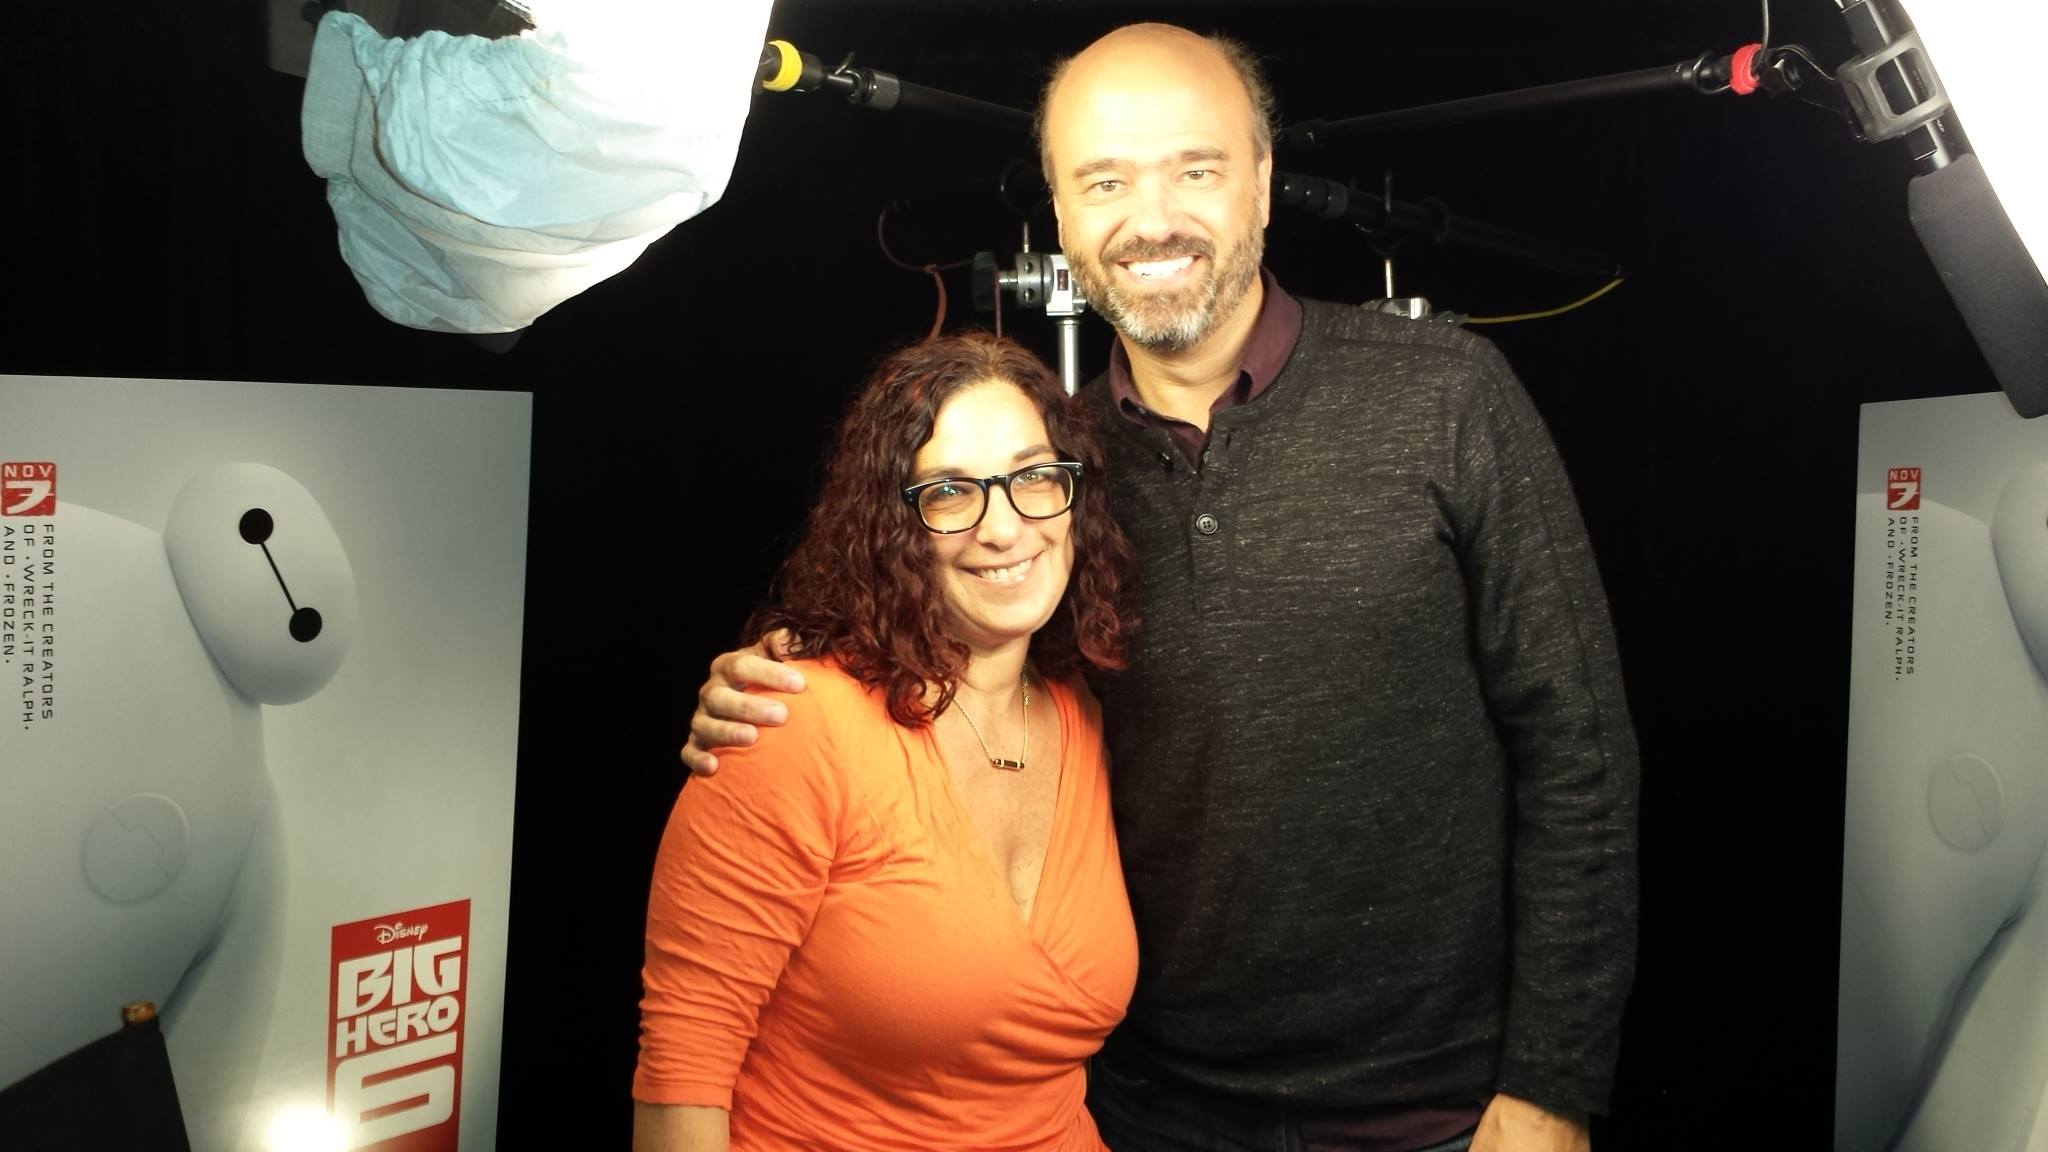 With Scott Adsit the voice of Baymax everyone's favorite healthcare provider